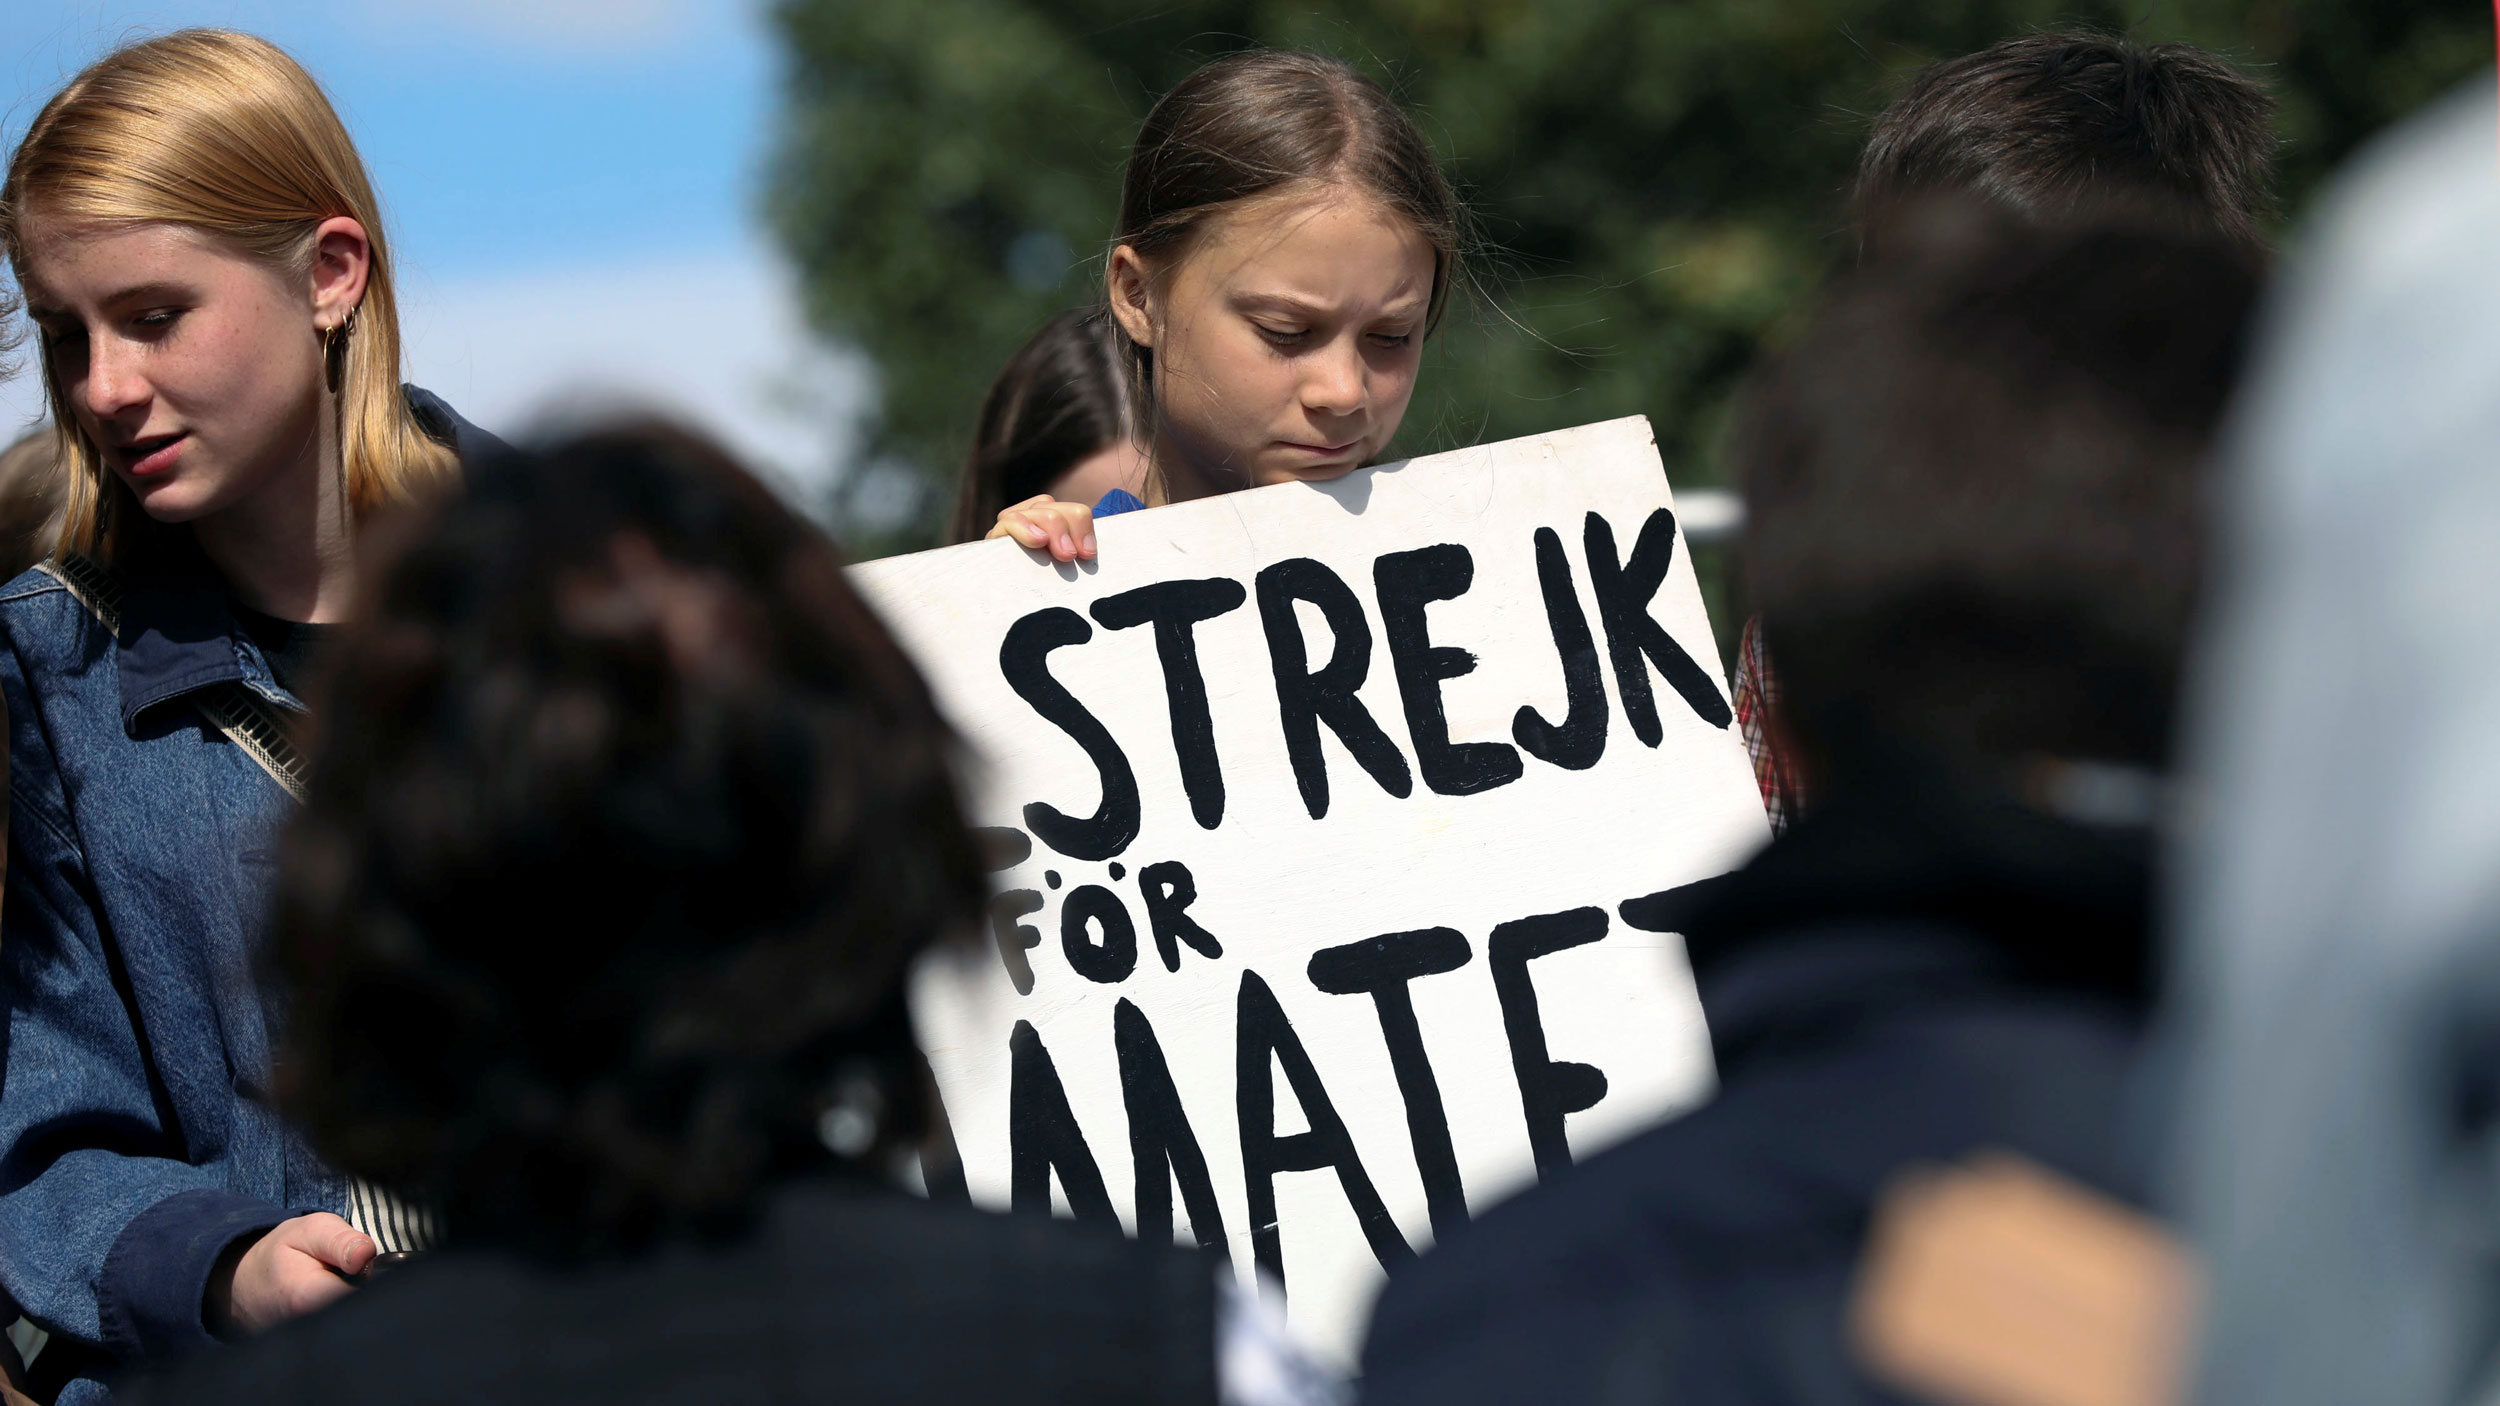 Climate change environmental teen activist Greta Thunberg participates in a climate strike rally and looks down at a placard